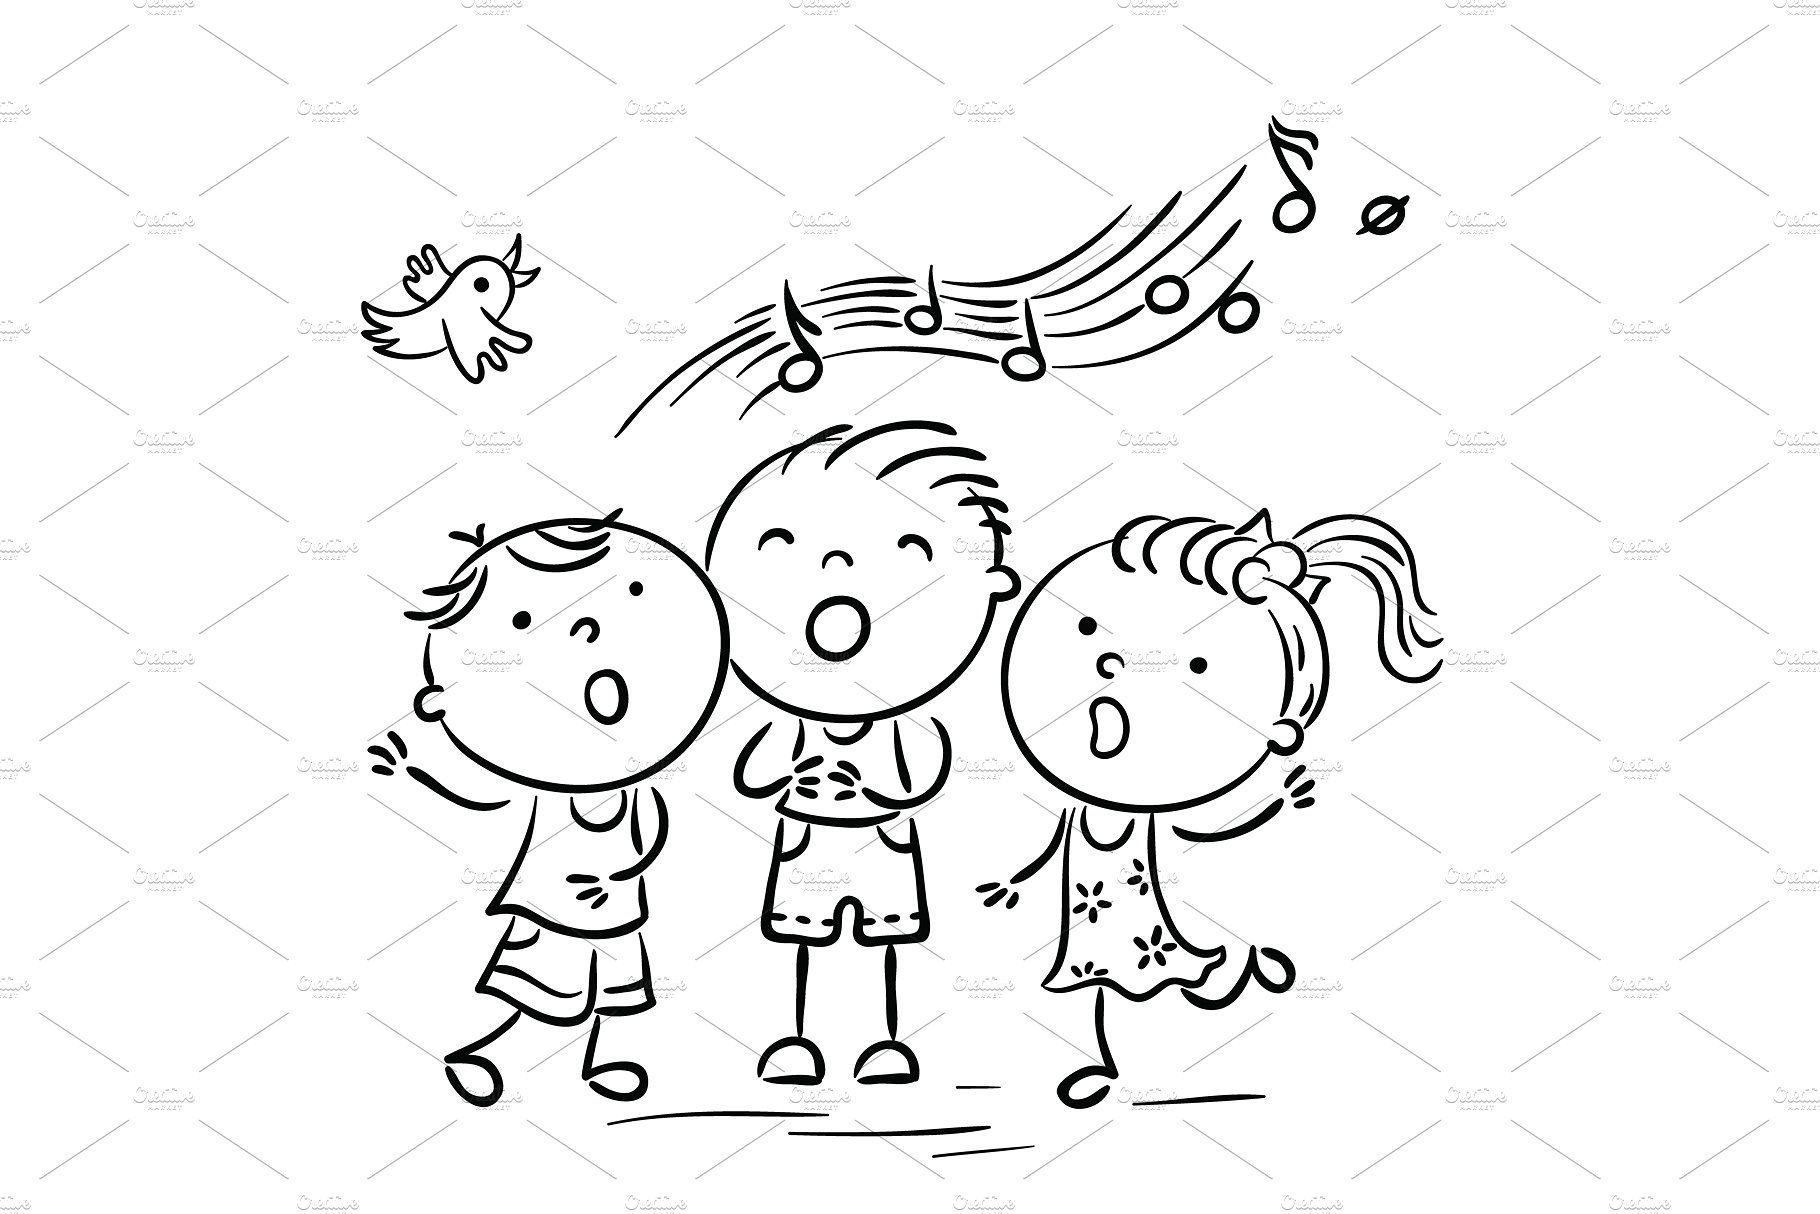 Children Singing Songs (With images) Songs, Singing